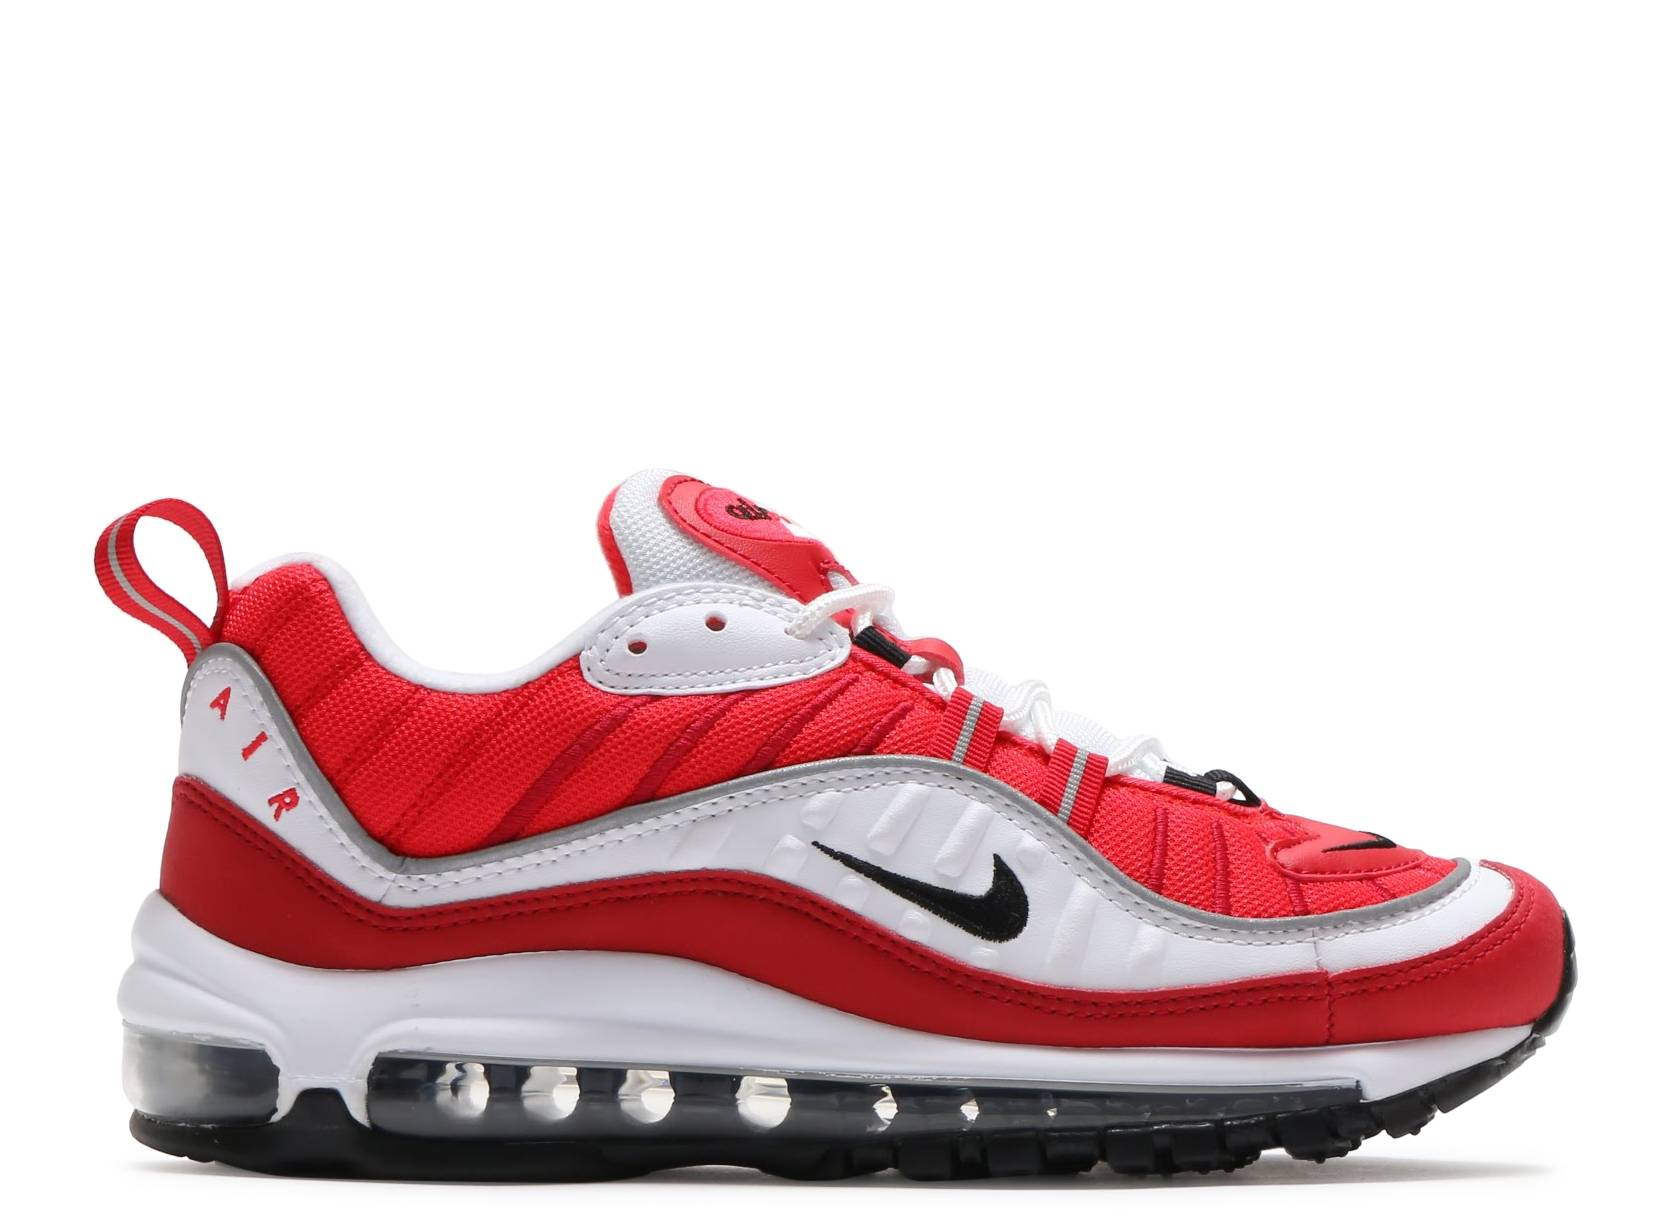 c7168698f0 W Air Max 98 - Nike - ah6799 101 - white/black-gym red | Flight Club